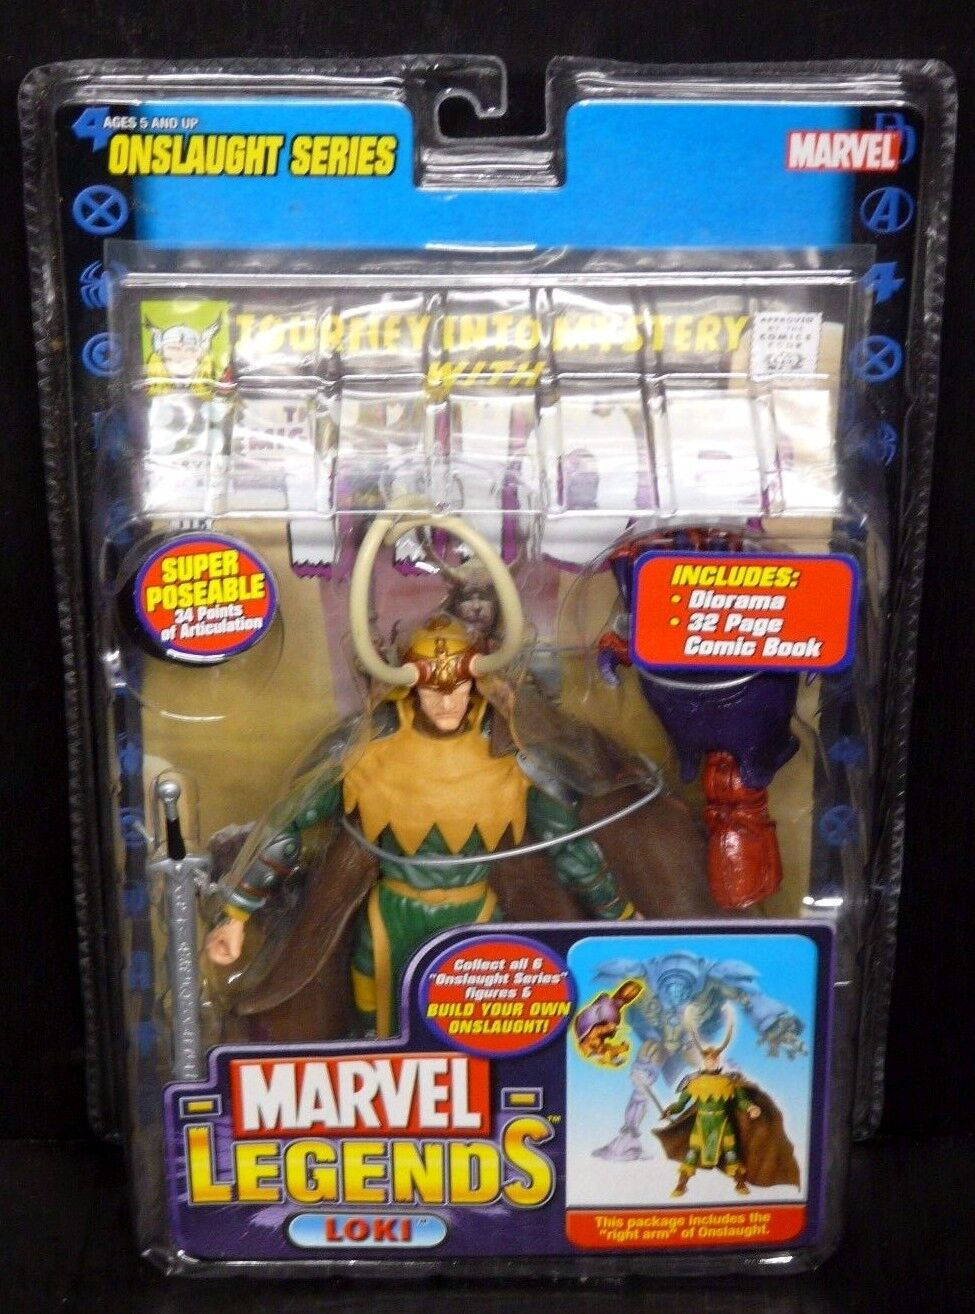 Marvel Legends Onslaught Series LOKI New  (Avengers Thor Spider-Man)